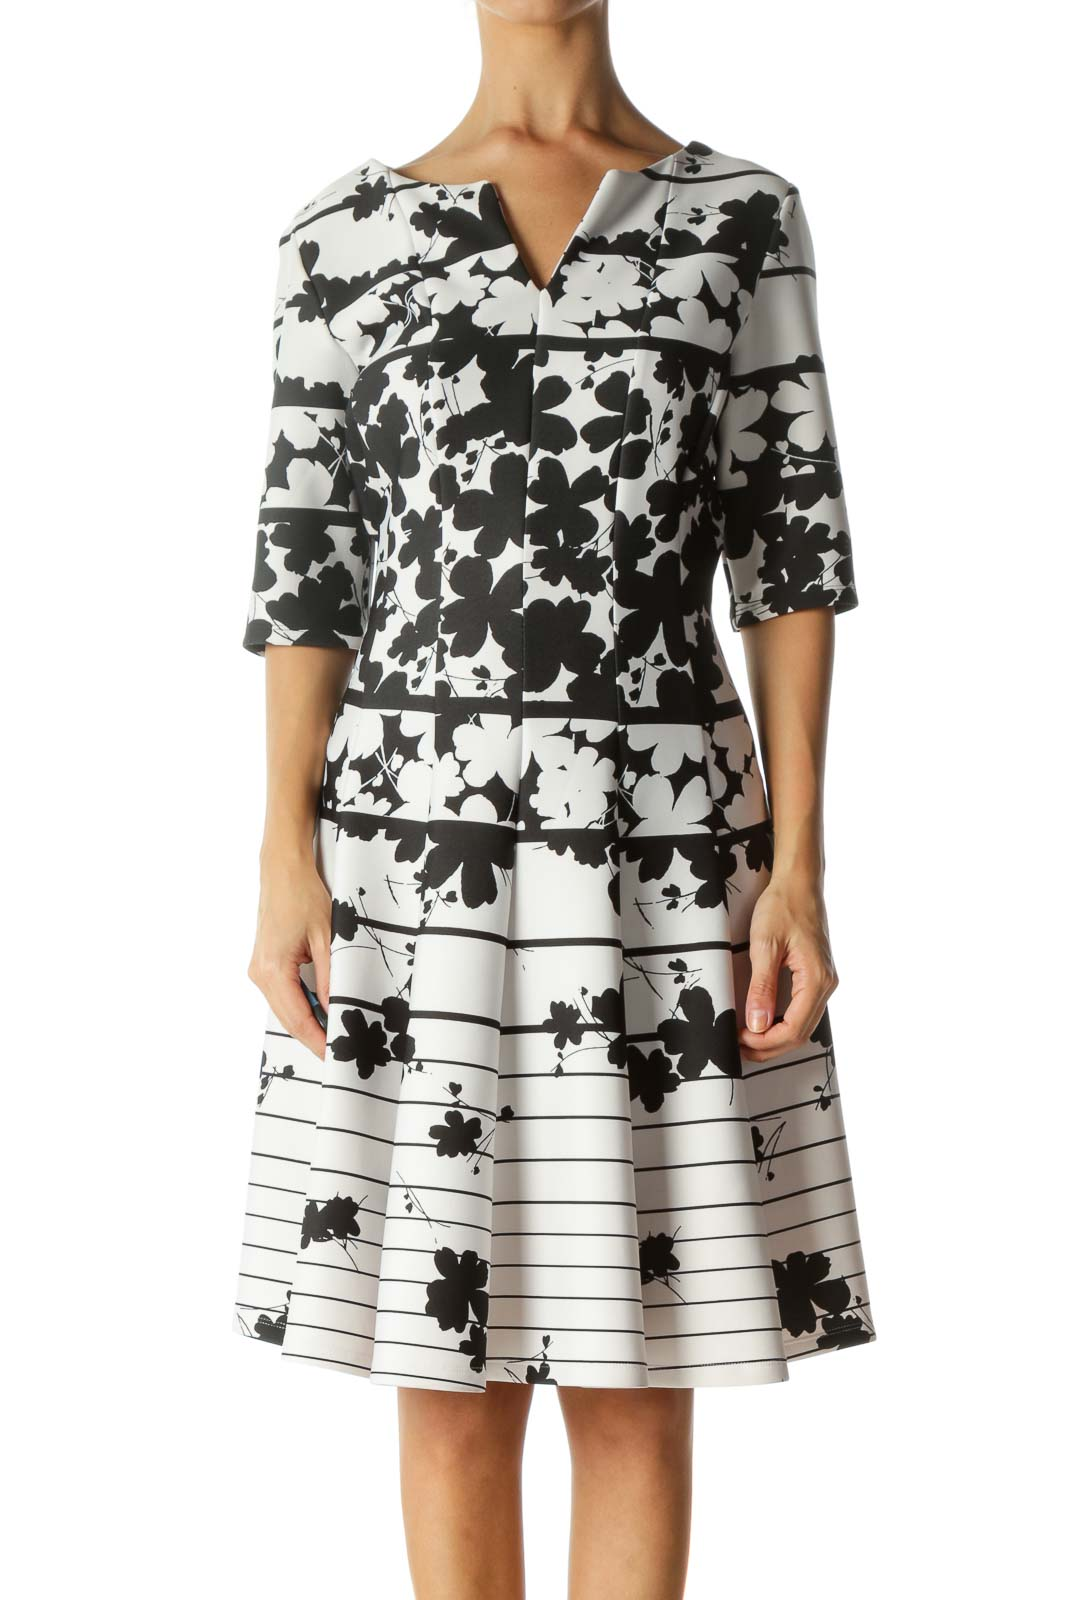 Black and White Floral Print Work Dress Front